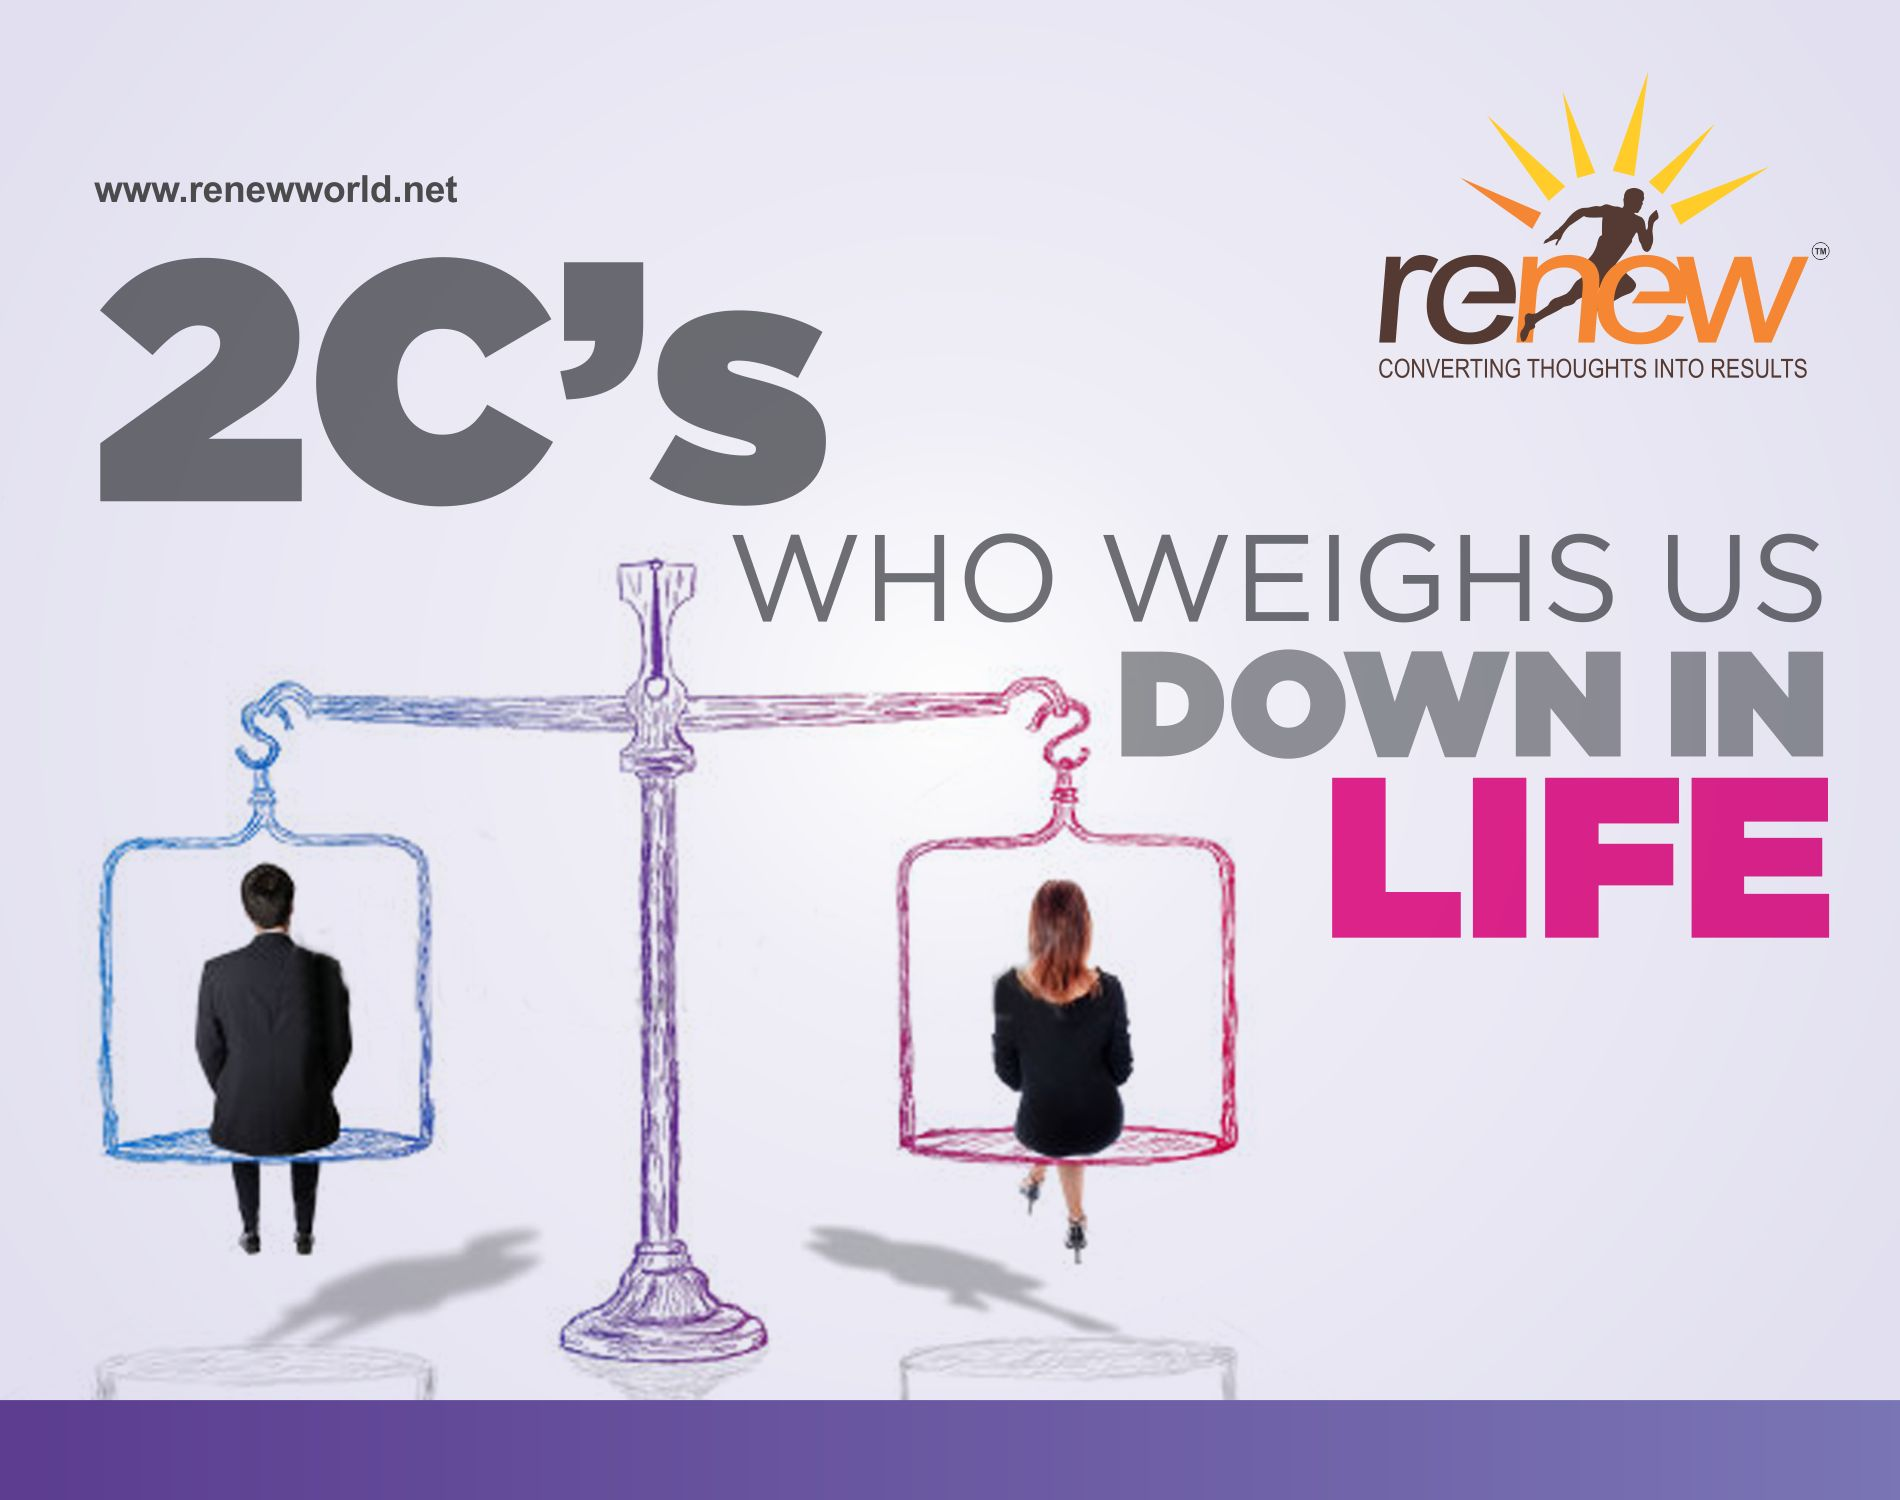 2 C's, who weighs us down in life